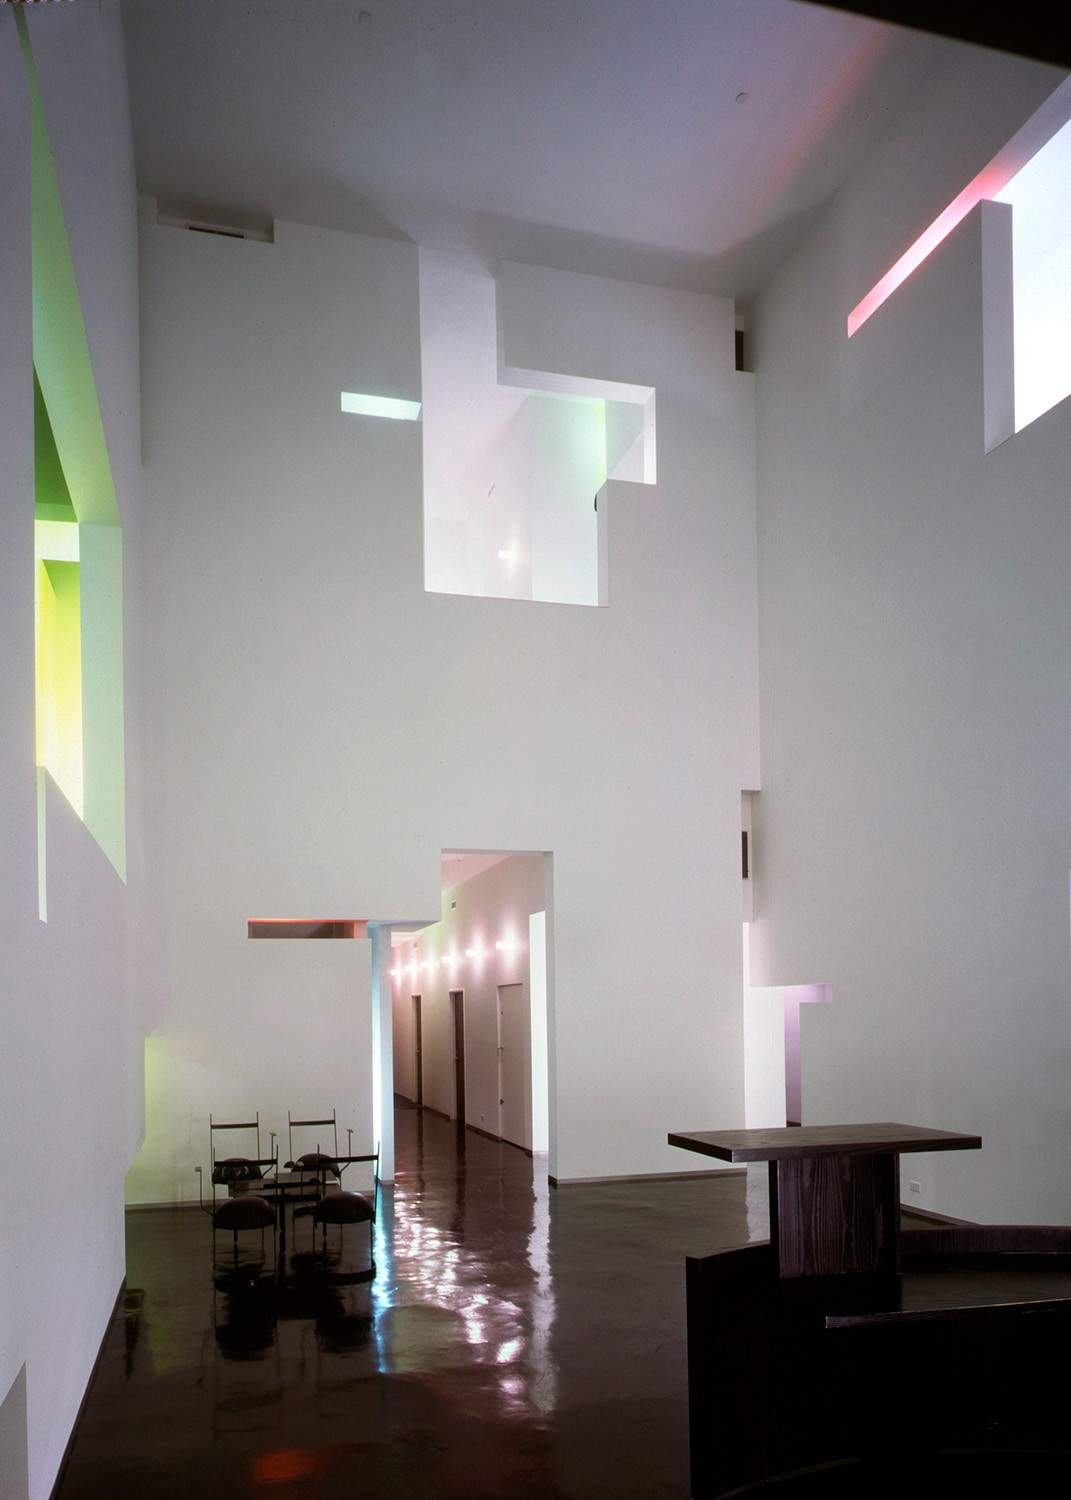 https://s3.us-east-2.amazonaws.com/steven-holl/uploads/projects/project-images/StevenHollArchitects_DEShaw_92-010-20B_WV.jpg